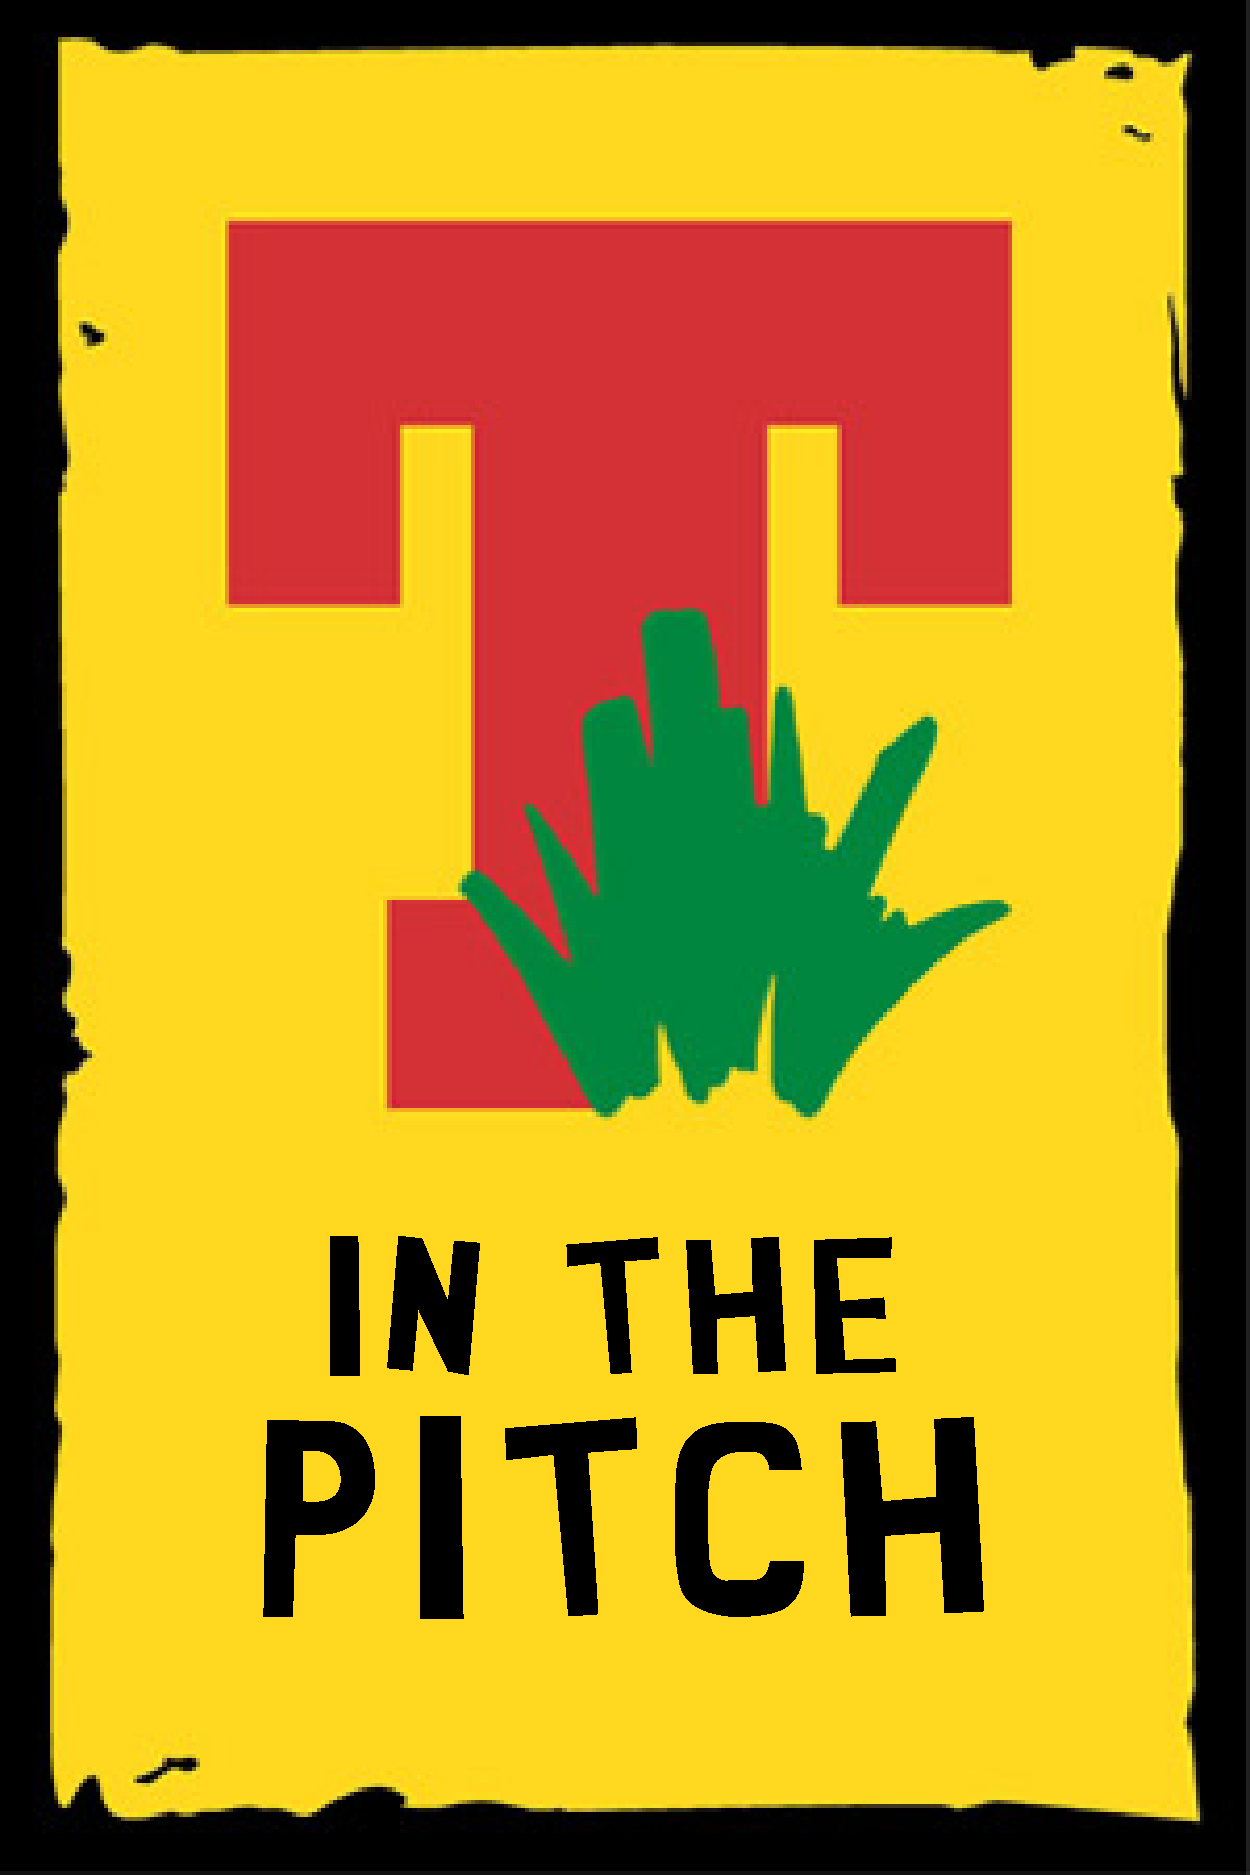 #TinThePitch